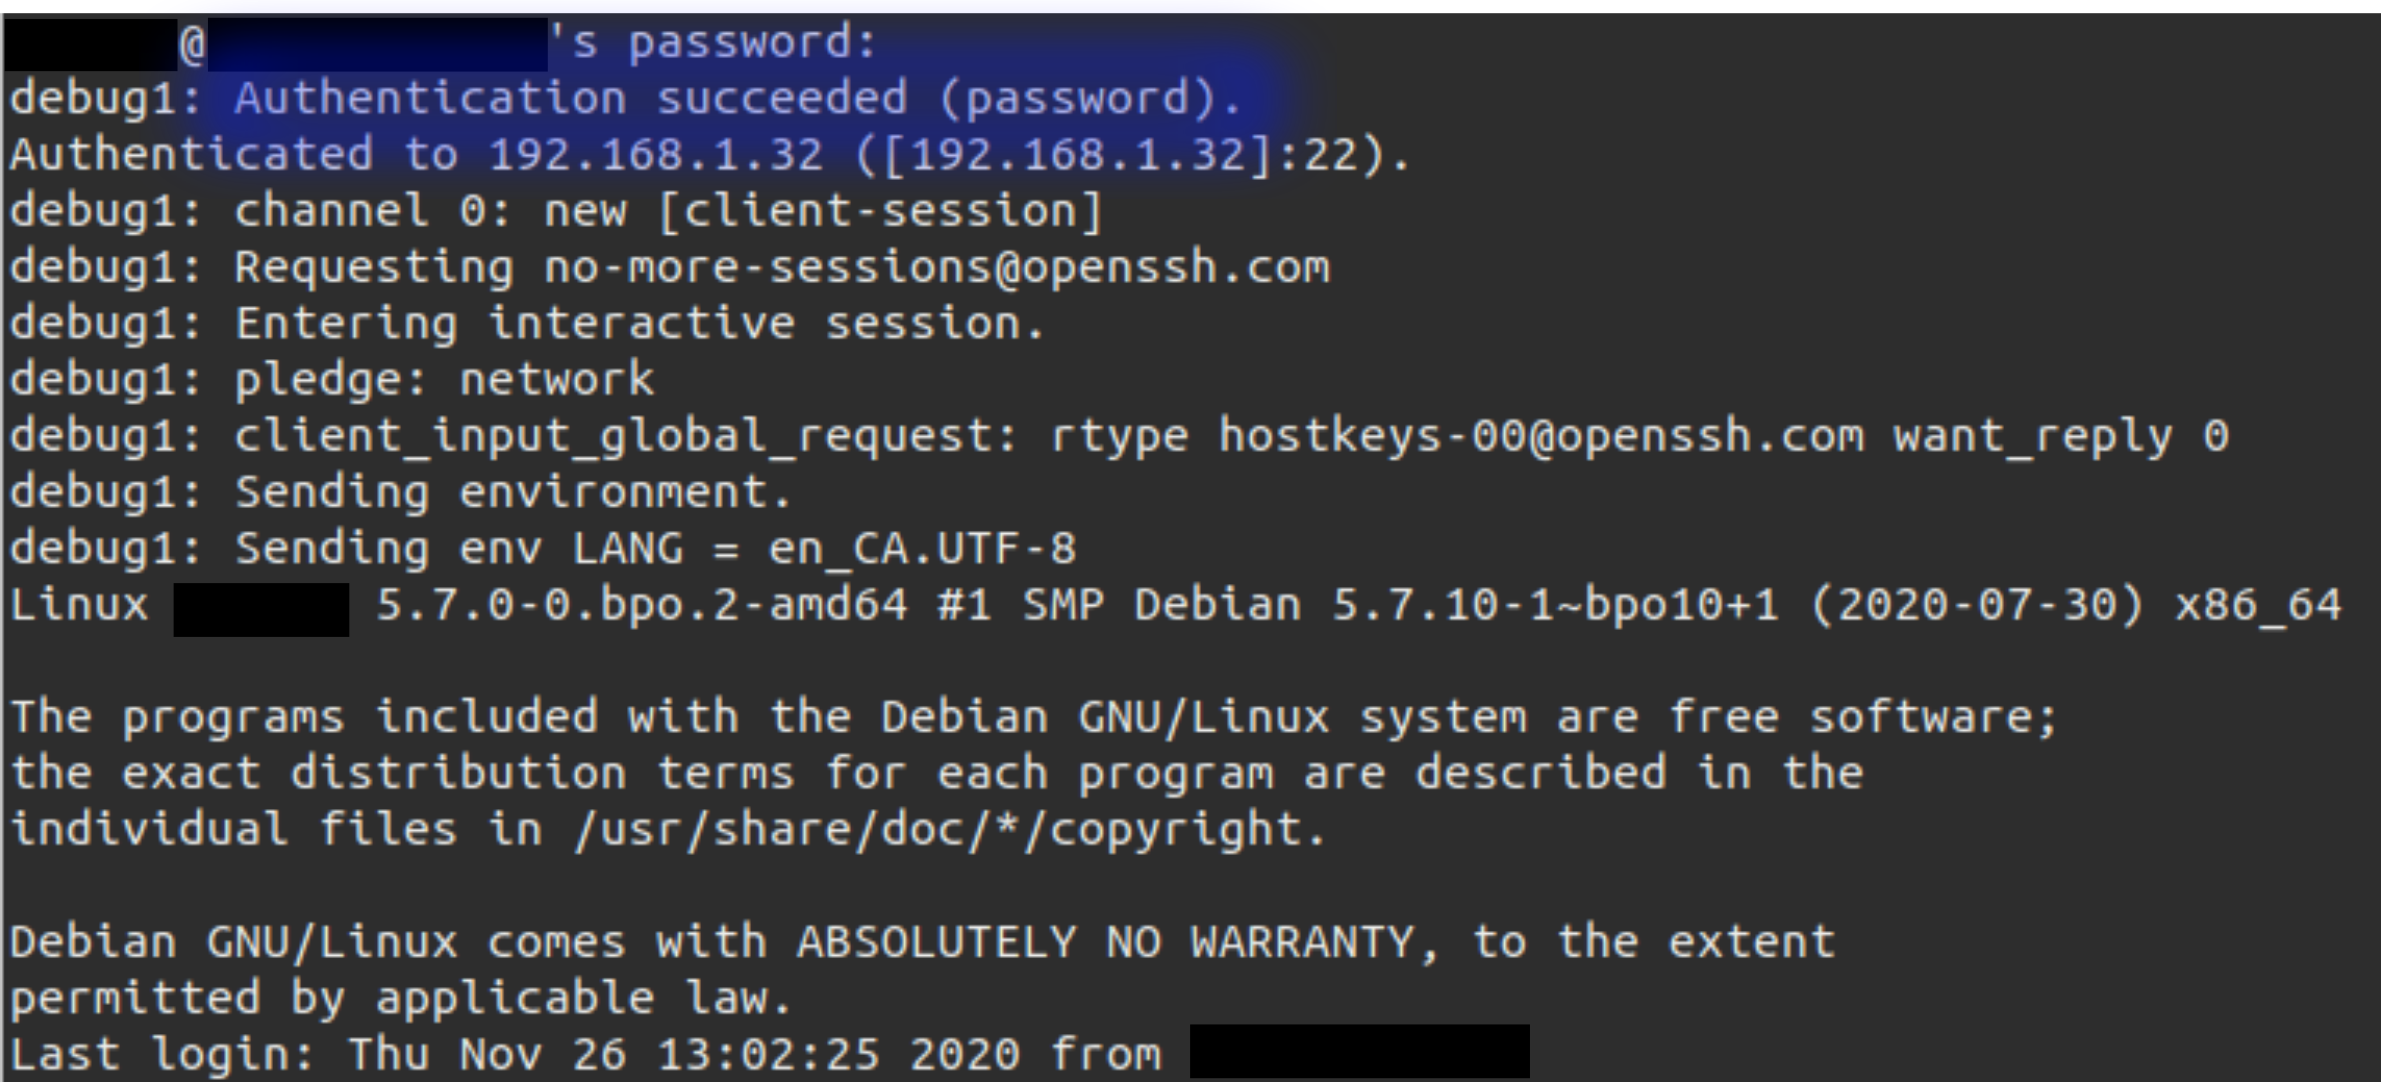 Authentication succeeded while logging in with SSH.